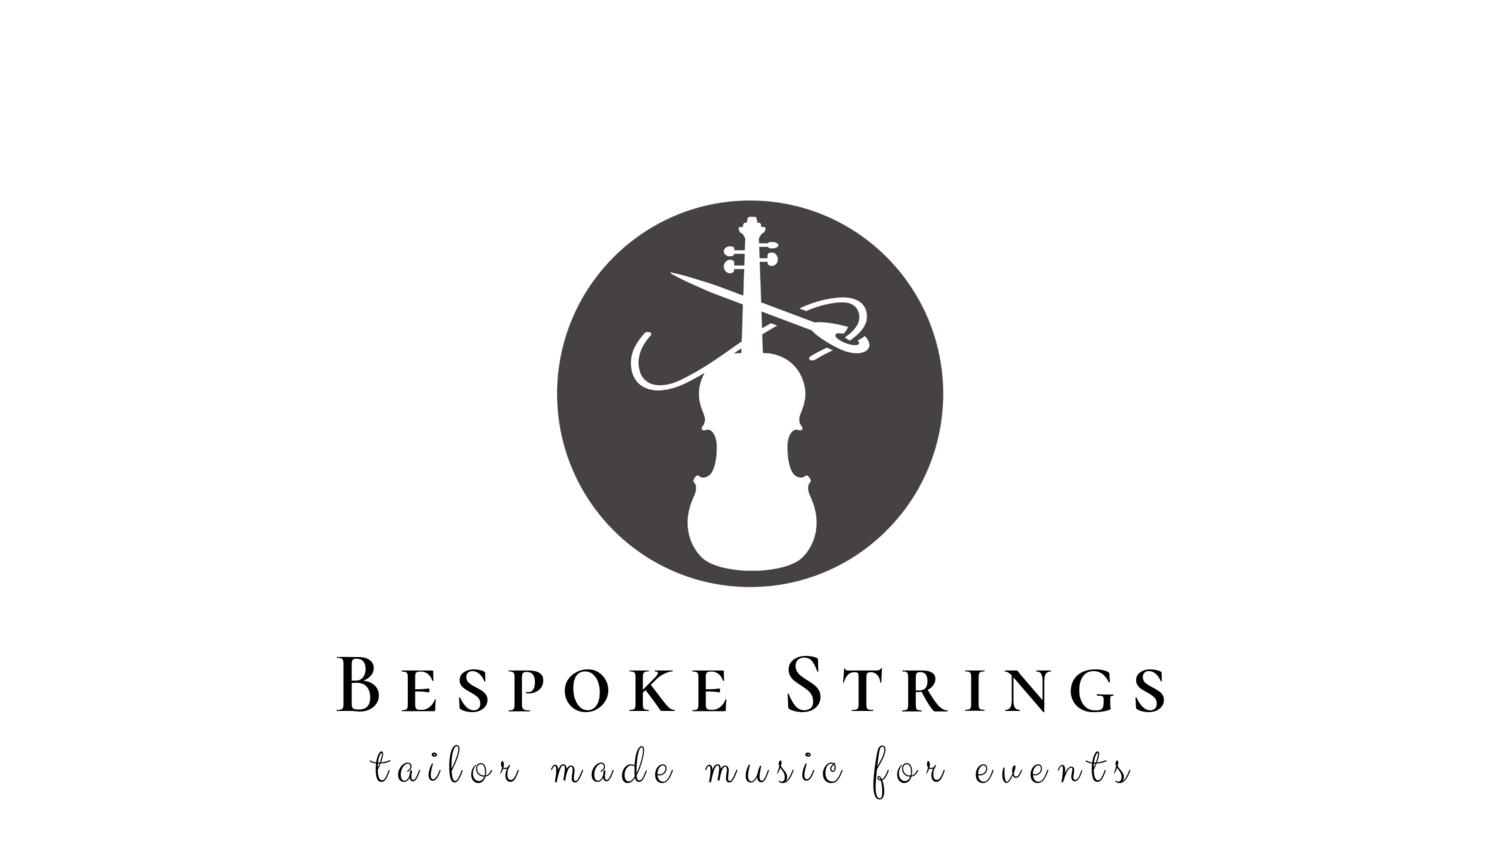 BESPOKE STRINGS